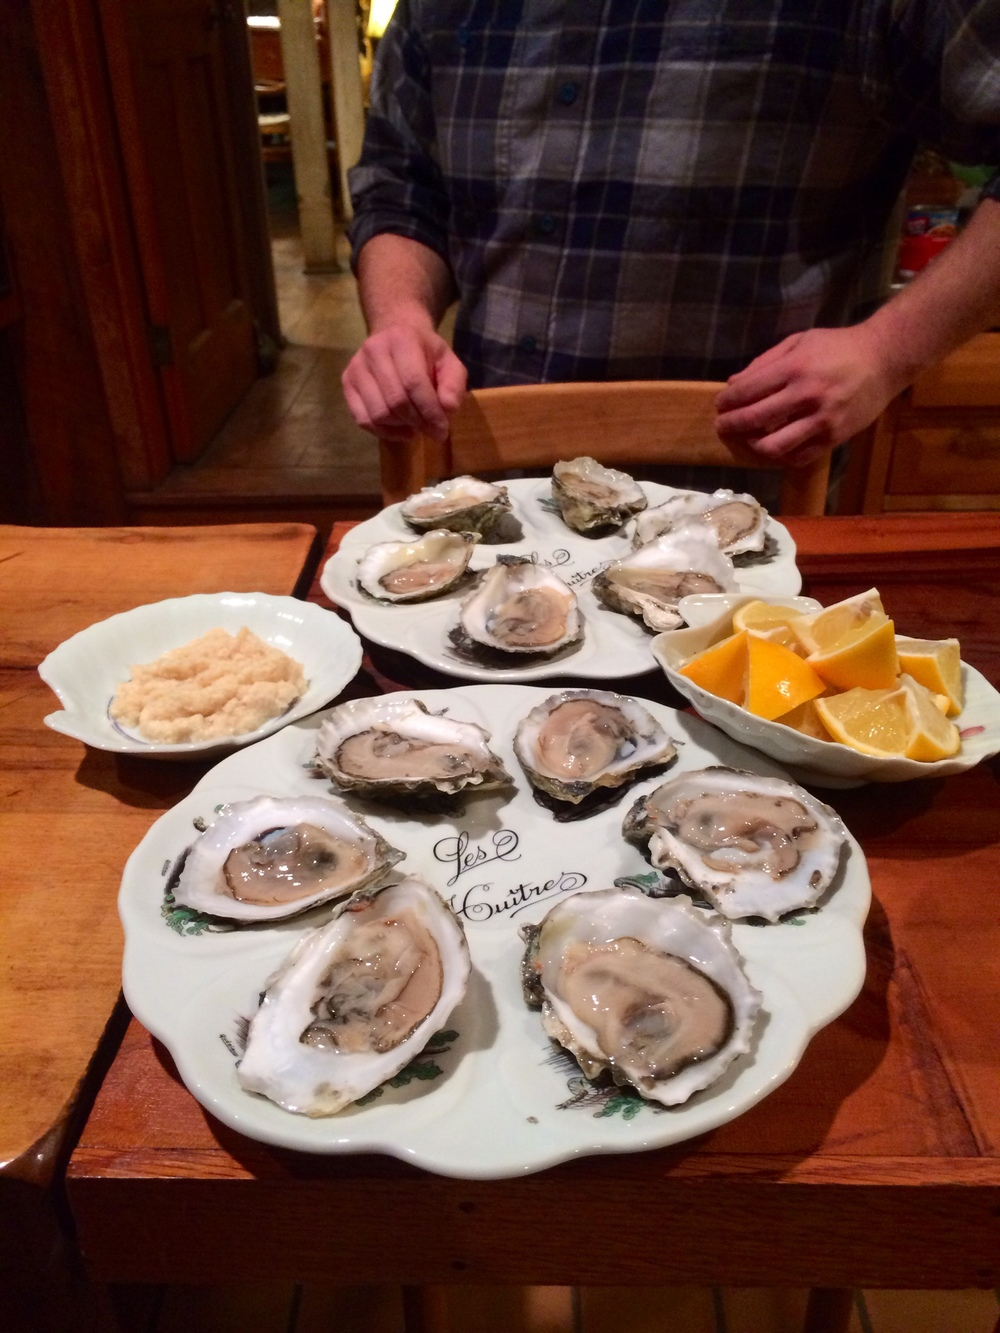 Fresh oysters shucked courtesy of Dave, Brandon, and Andrew